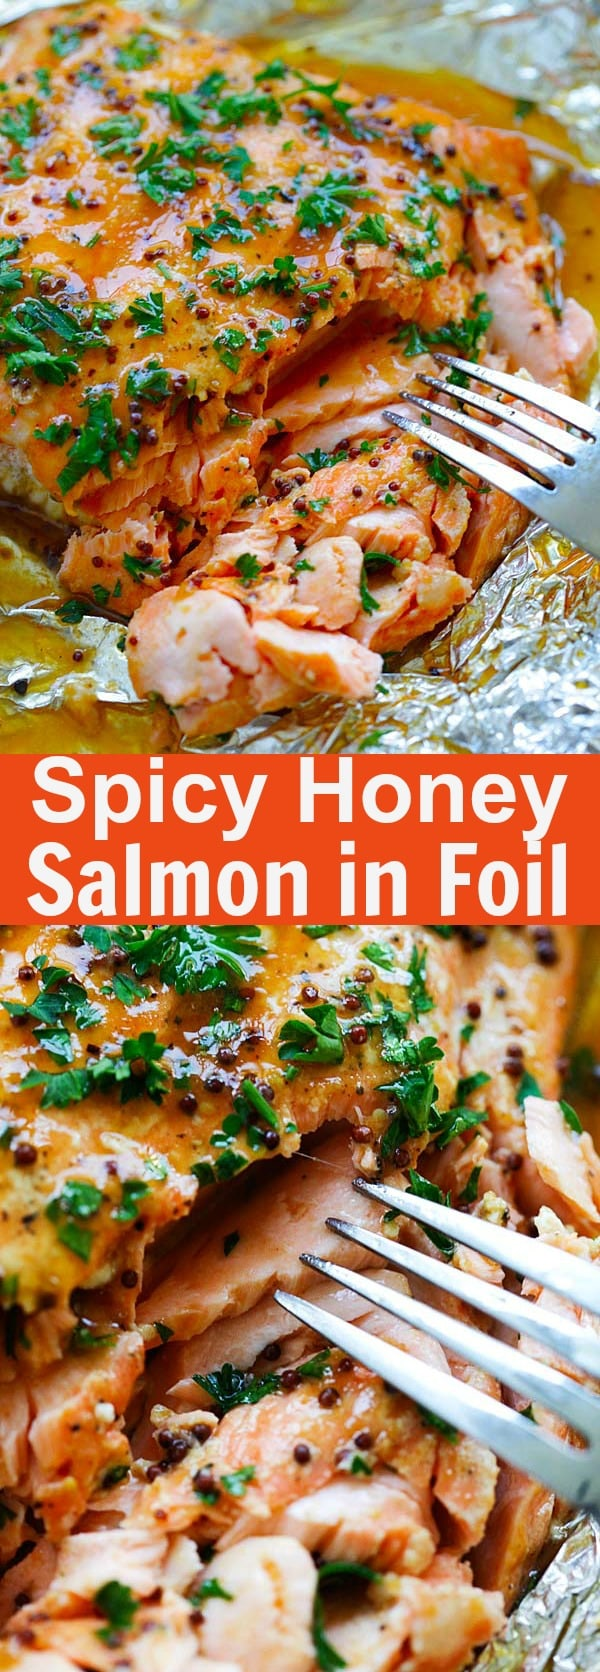 Spicy Honey Salmon - Foil baked salmon with honey, dijon mustard and Asian chili-garlic sauce. Moist, juicy and delicious recipe for busy weeknights | rasamalaysia.com